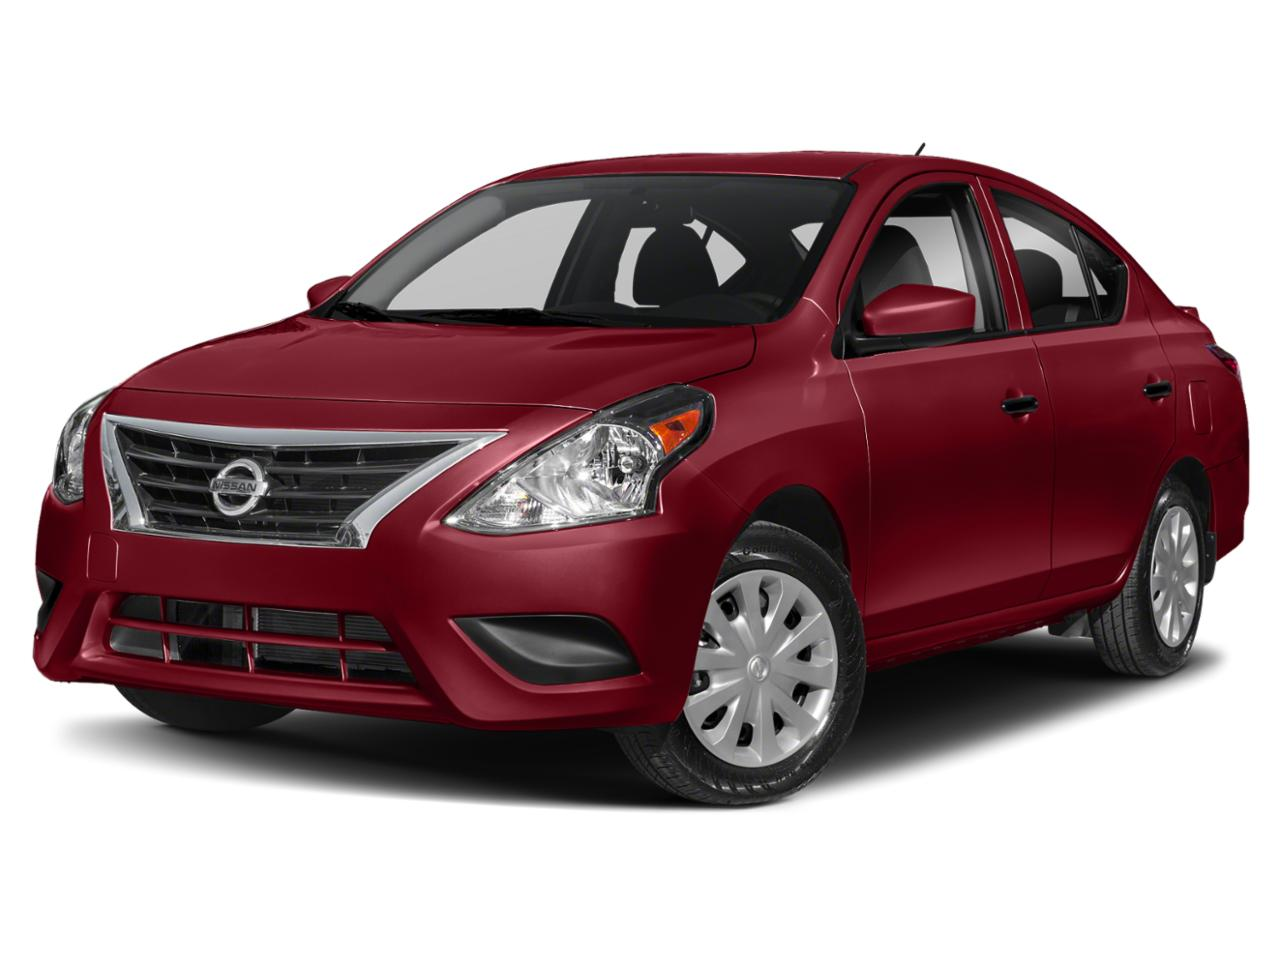 2019 Nissan Versa Sedan Vehicle Photo in Prescott, AZ 86305